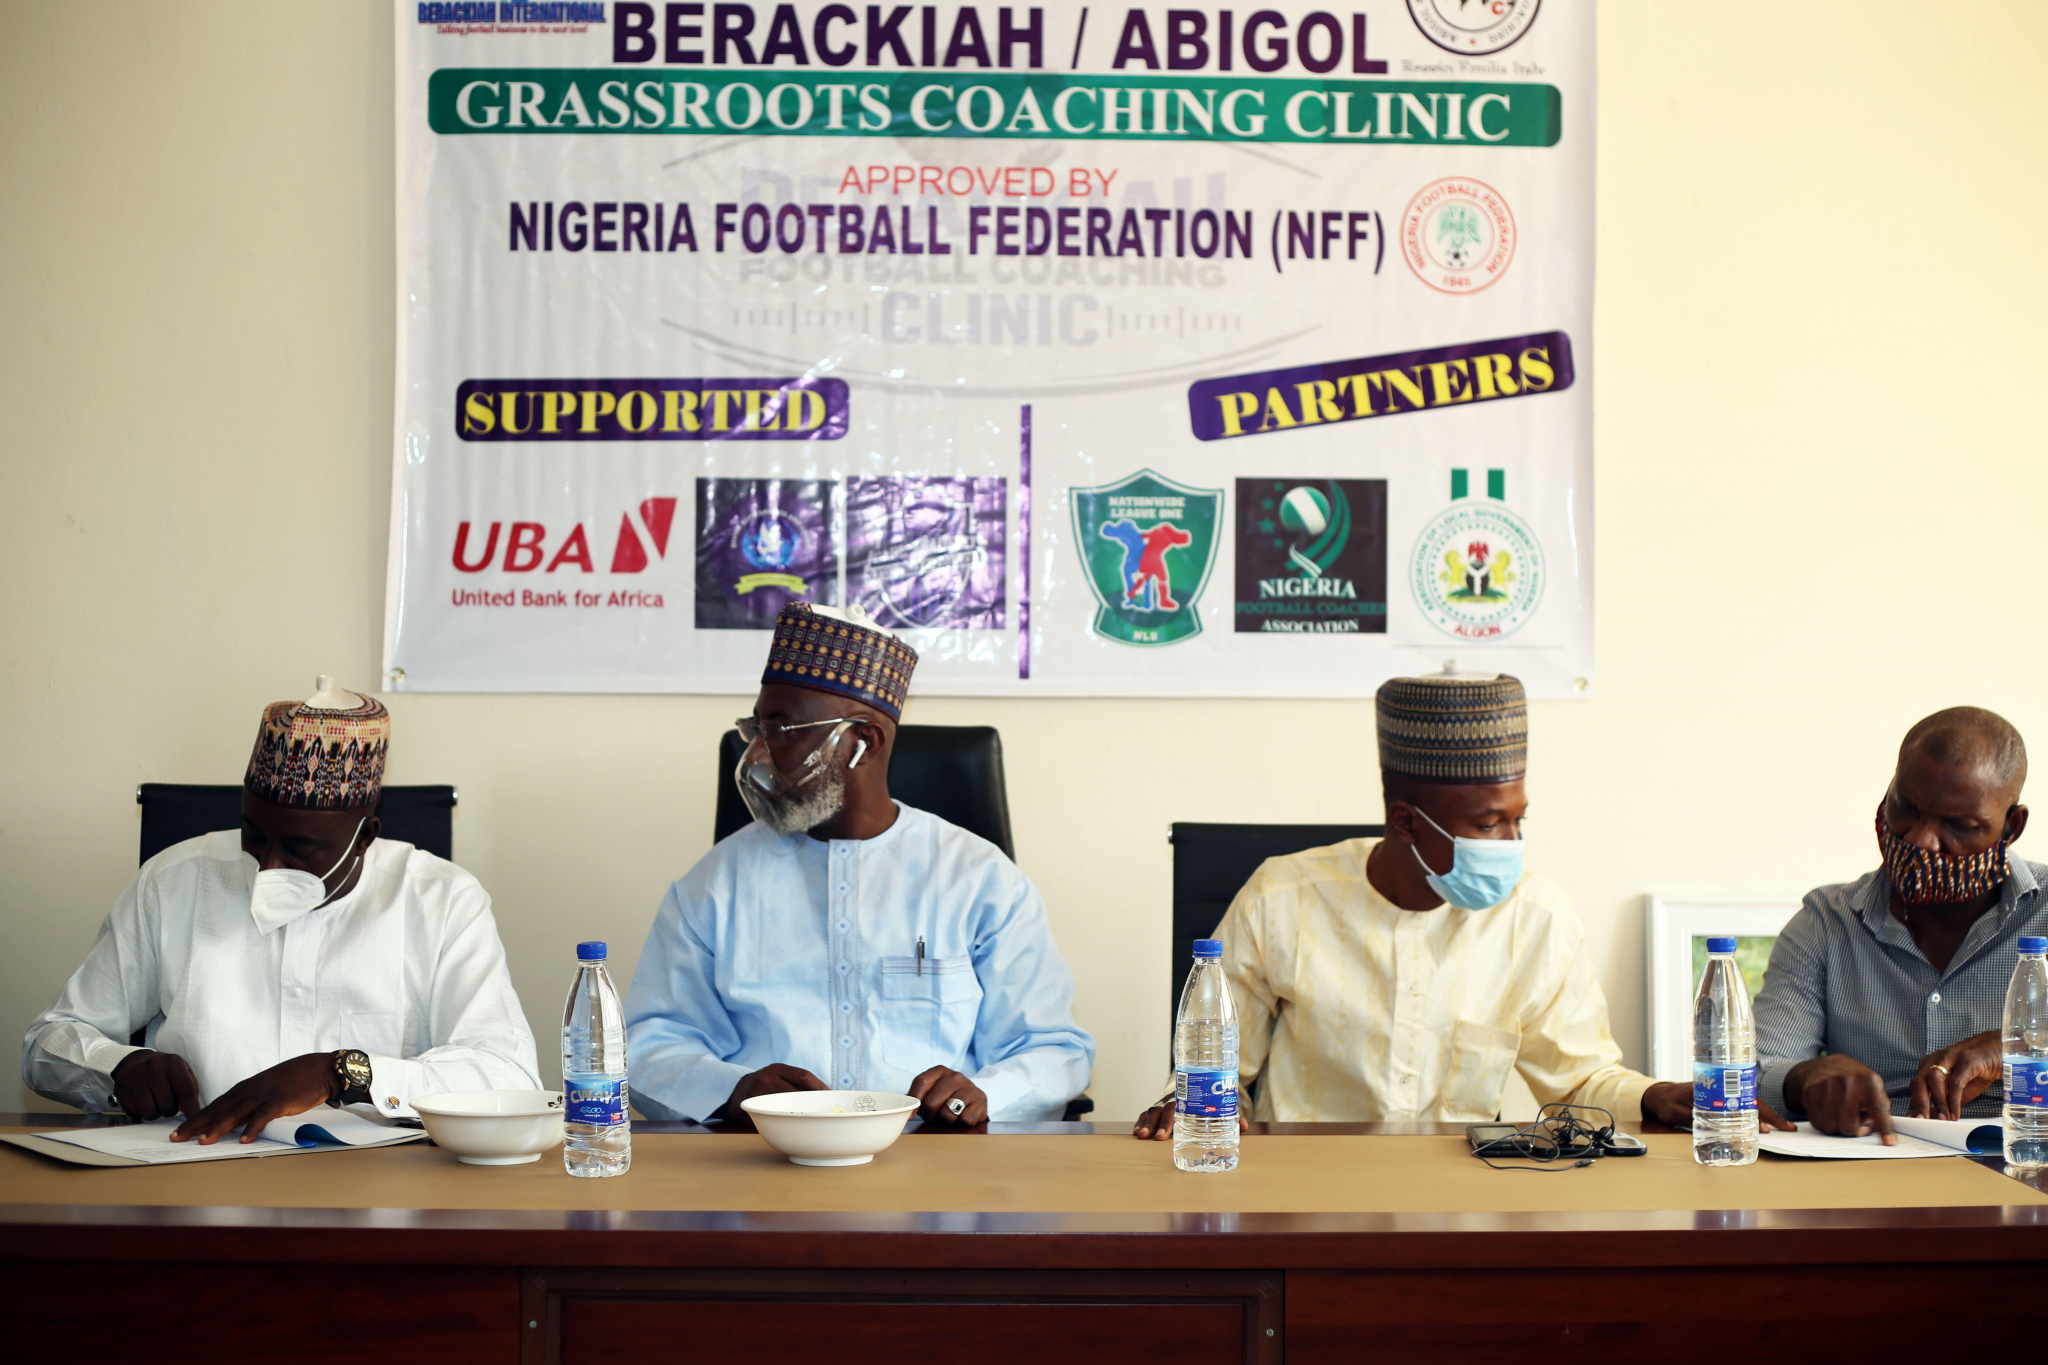 GRASSROOTS FOOTBALL: NIGERIA'S NATIONWIDE LEAGUE ONE SIGNS MOU WITH BERACKIAH FOOTBALL COACHING CLINIC